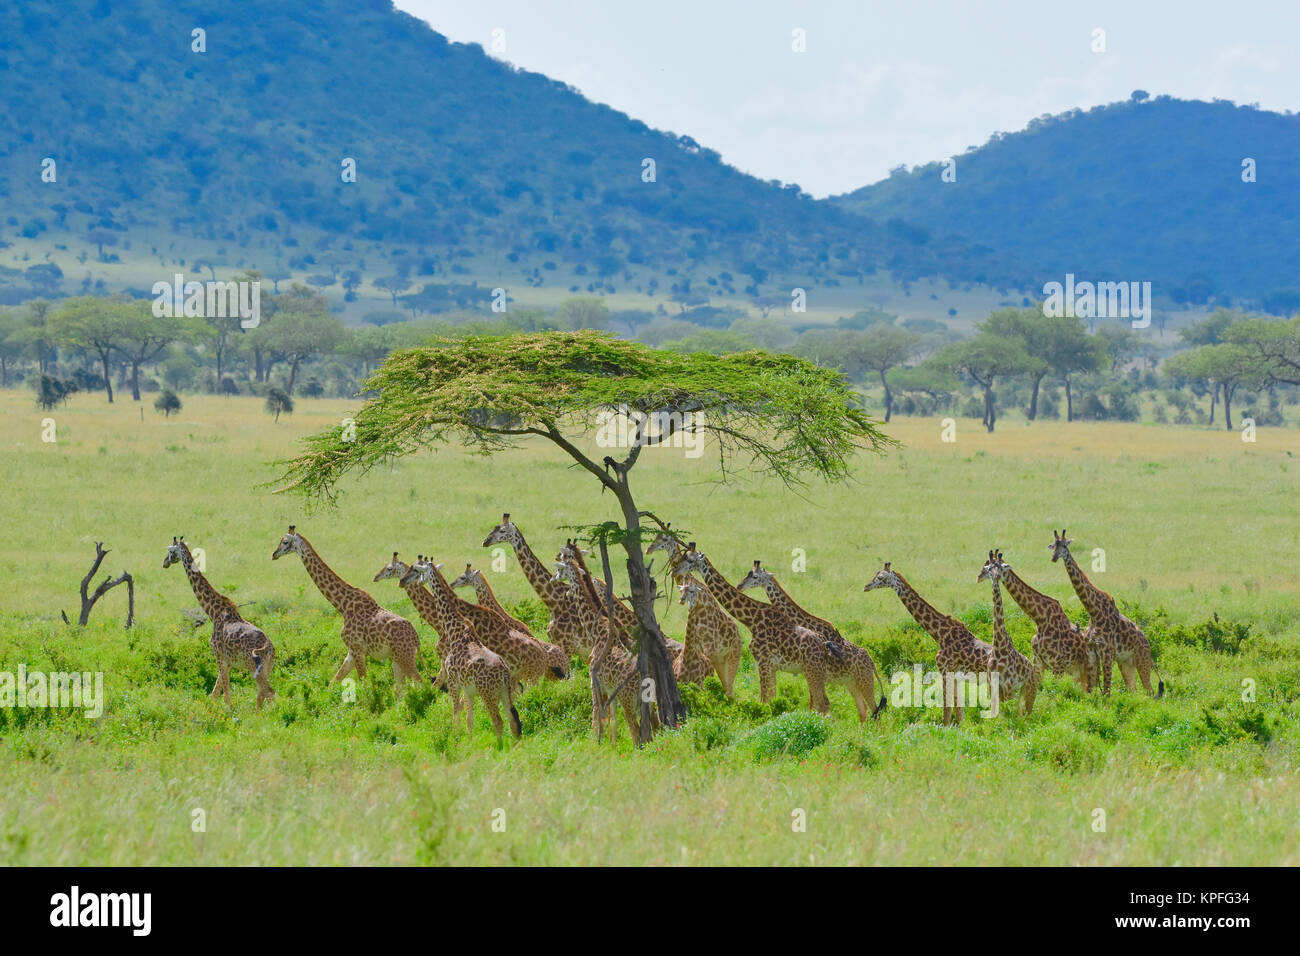 Wildlife sightseeing in one of the prime wildlife destinations on earht -- Serengeti, Tanzania. Big herd of giraffe. - Stock Image